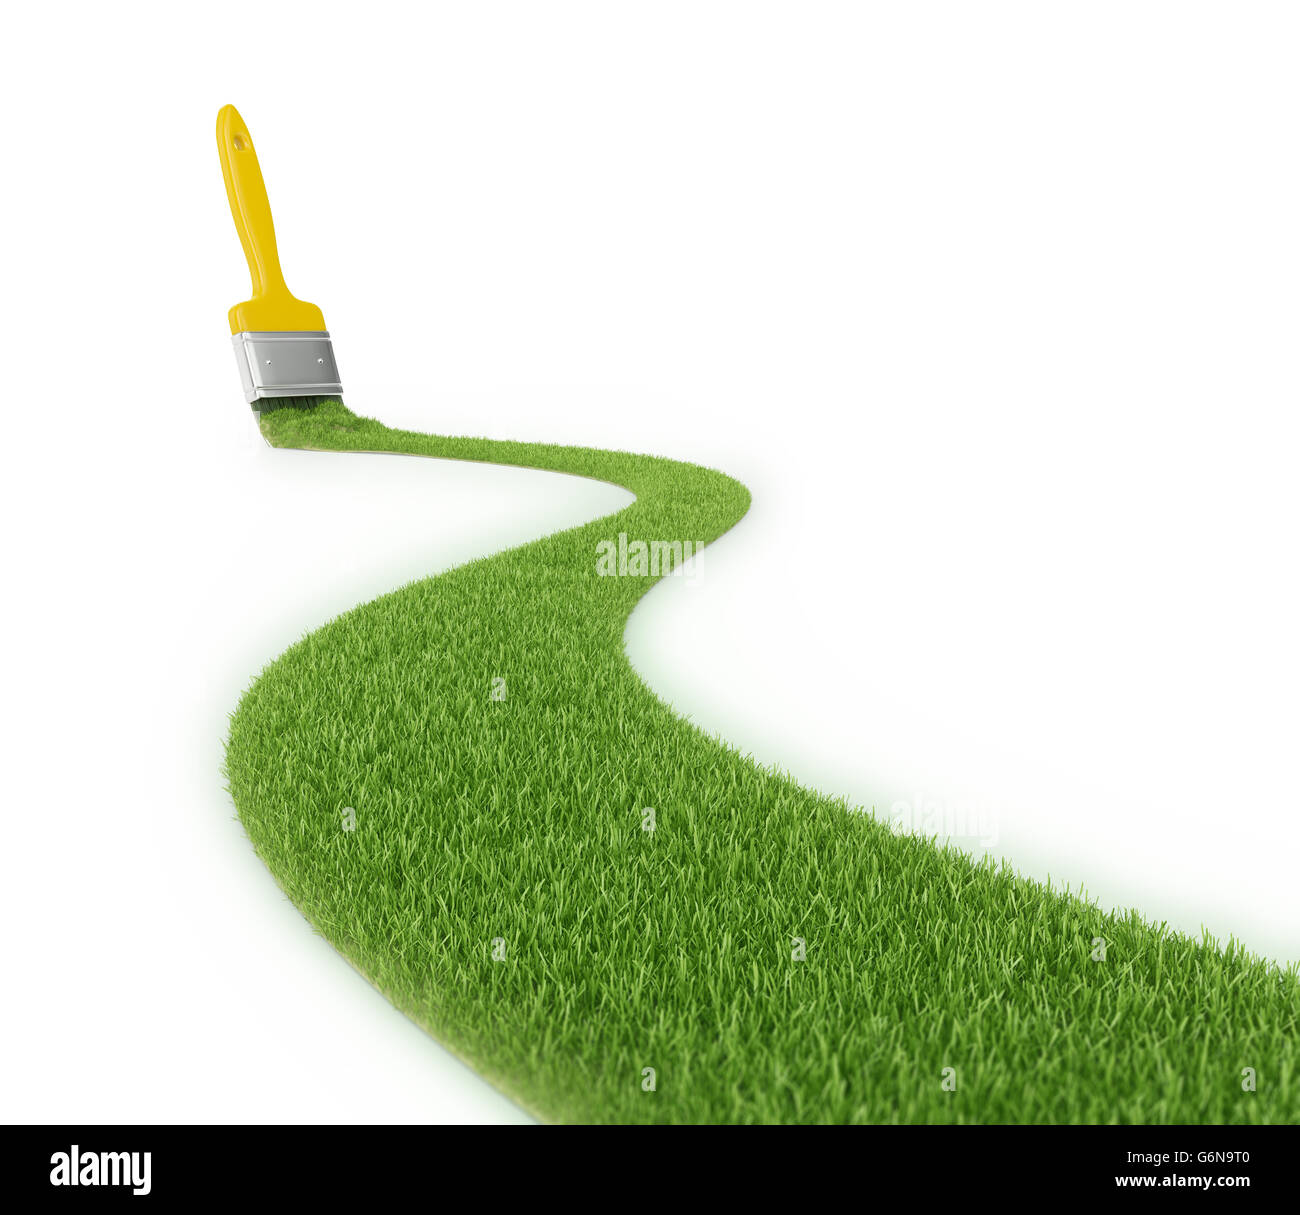 Grass pathway made with a stroke of a paintbrush - 3D illustration - Stock Image